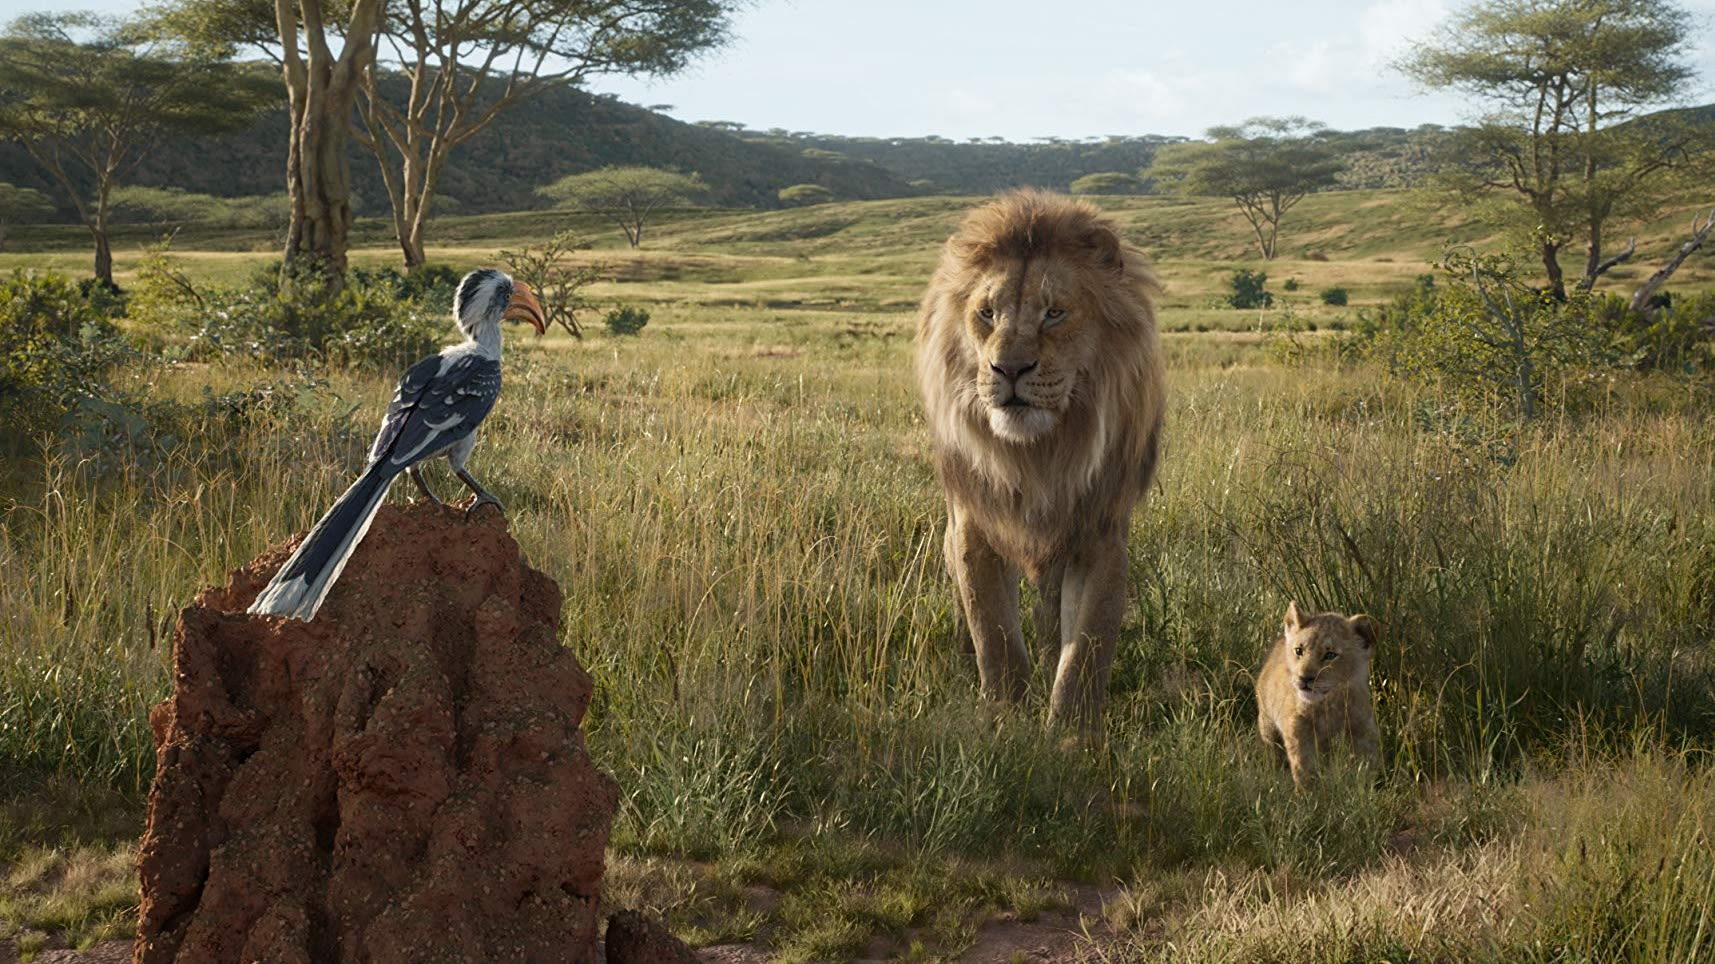 Disney's 'The Lion King' hauls in $54.7 million in China debut